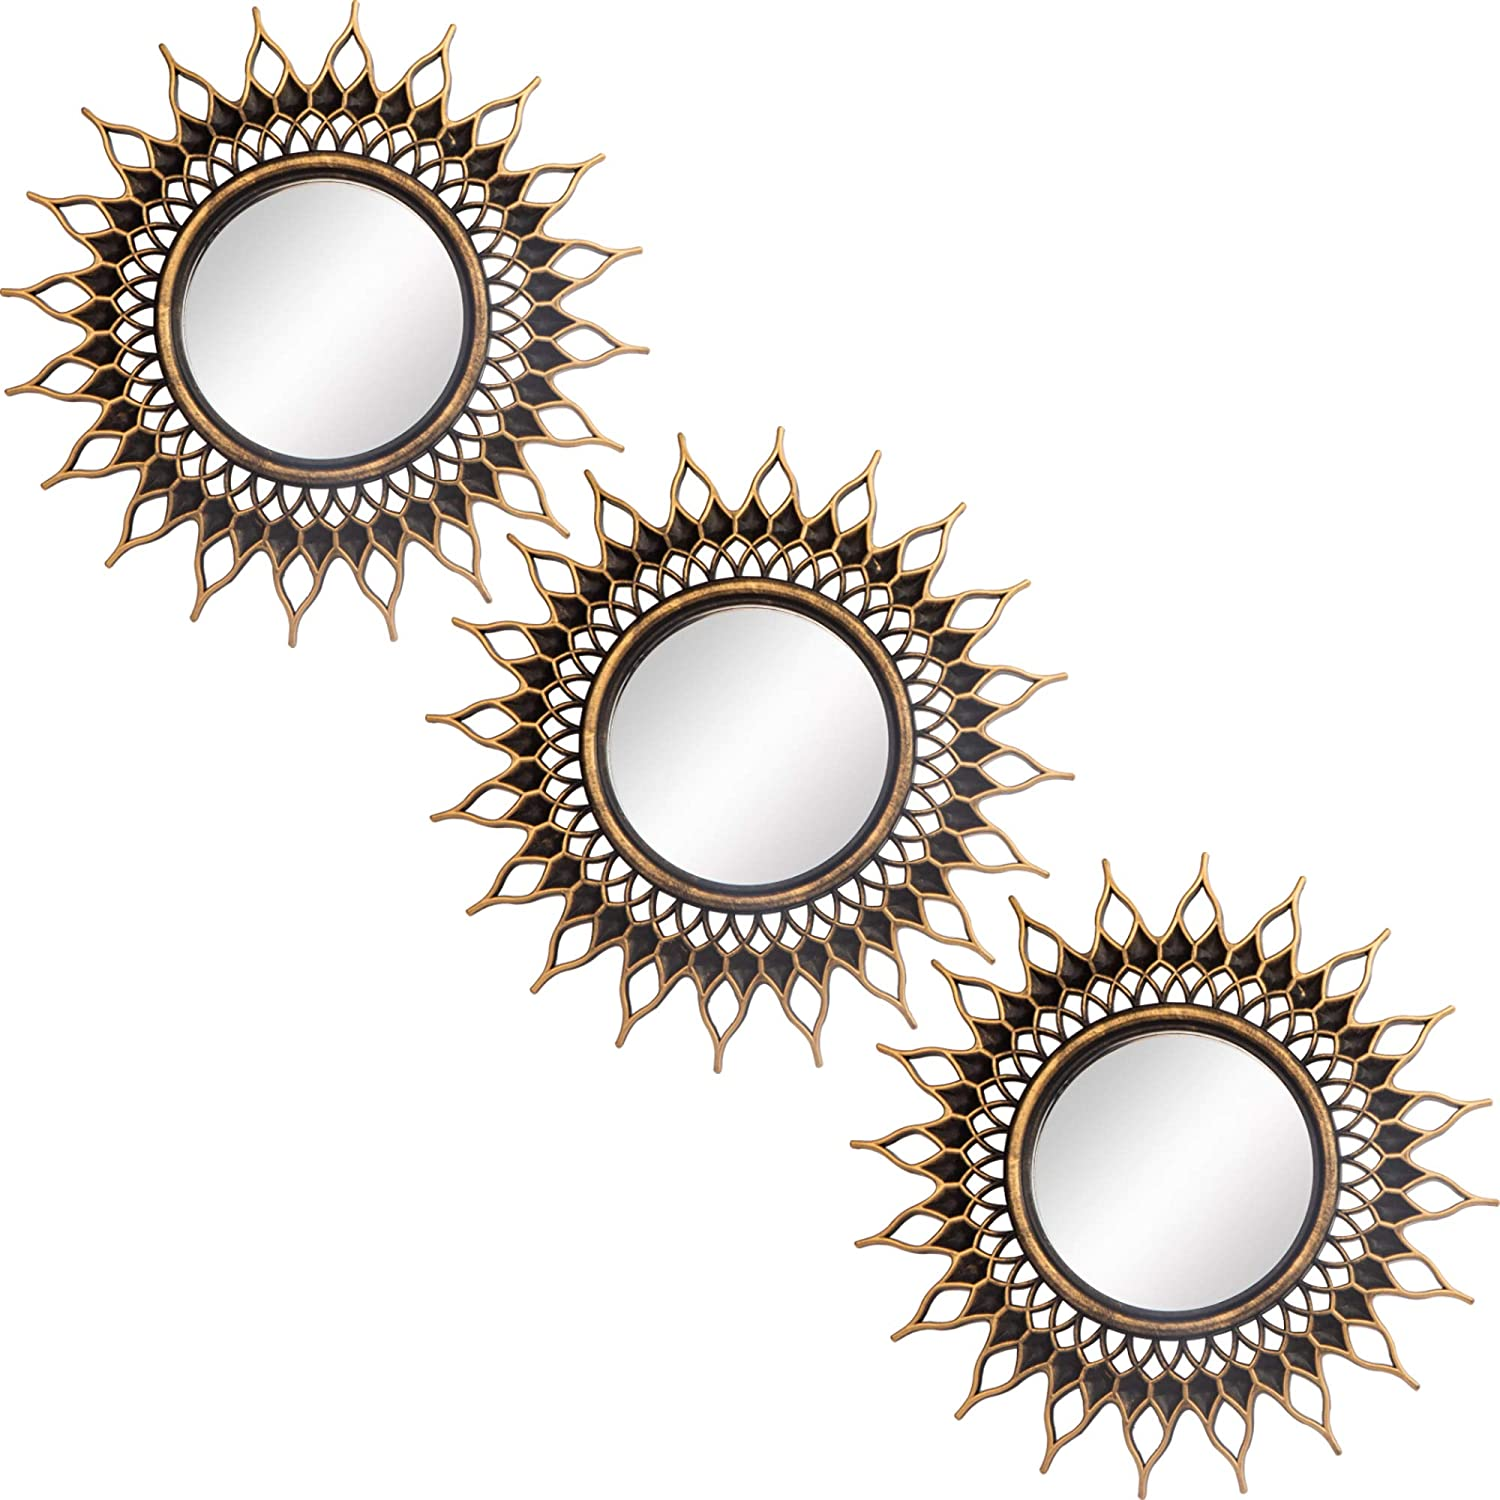 Small Round Decor Wall Mirrors Set of 3 Home Accessories for Bedroom, Living Room & Dinning Room (MS009)